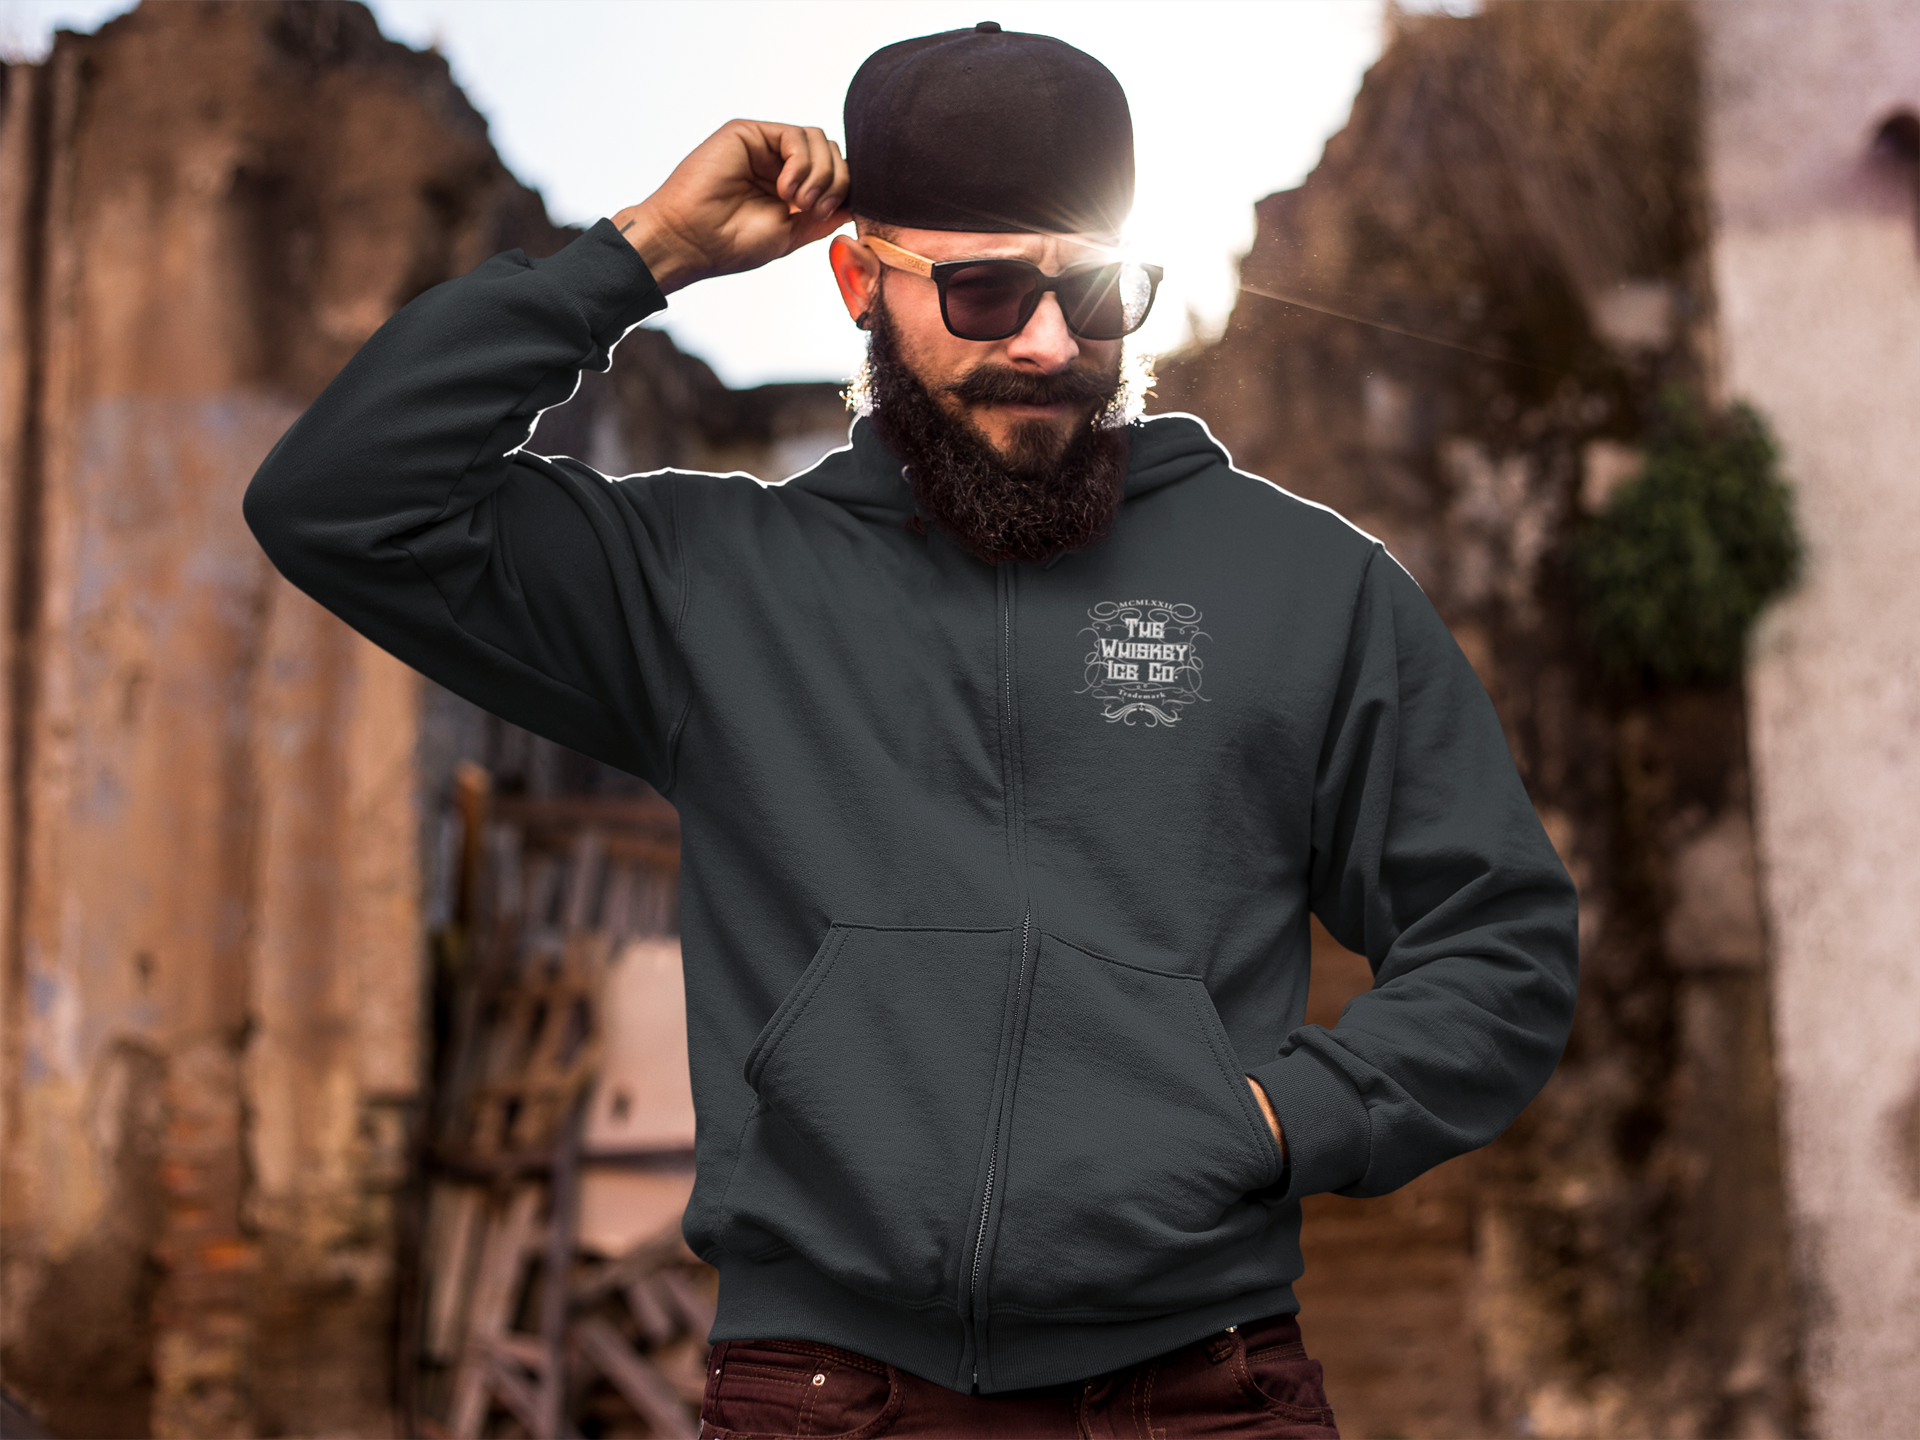 the-whiskey-ice-co-man-unisex-hoodie-zip-small-logo-front-asphalt.png